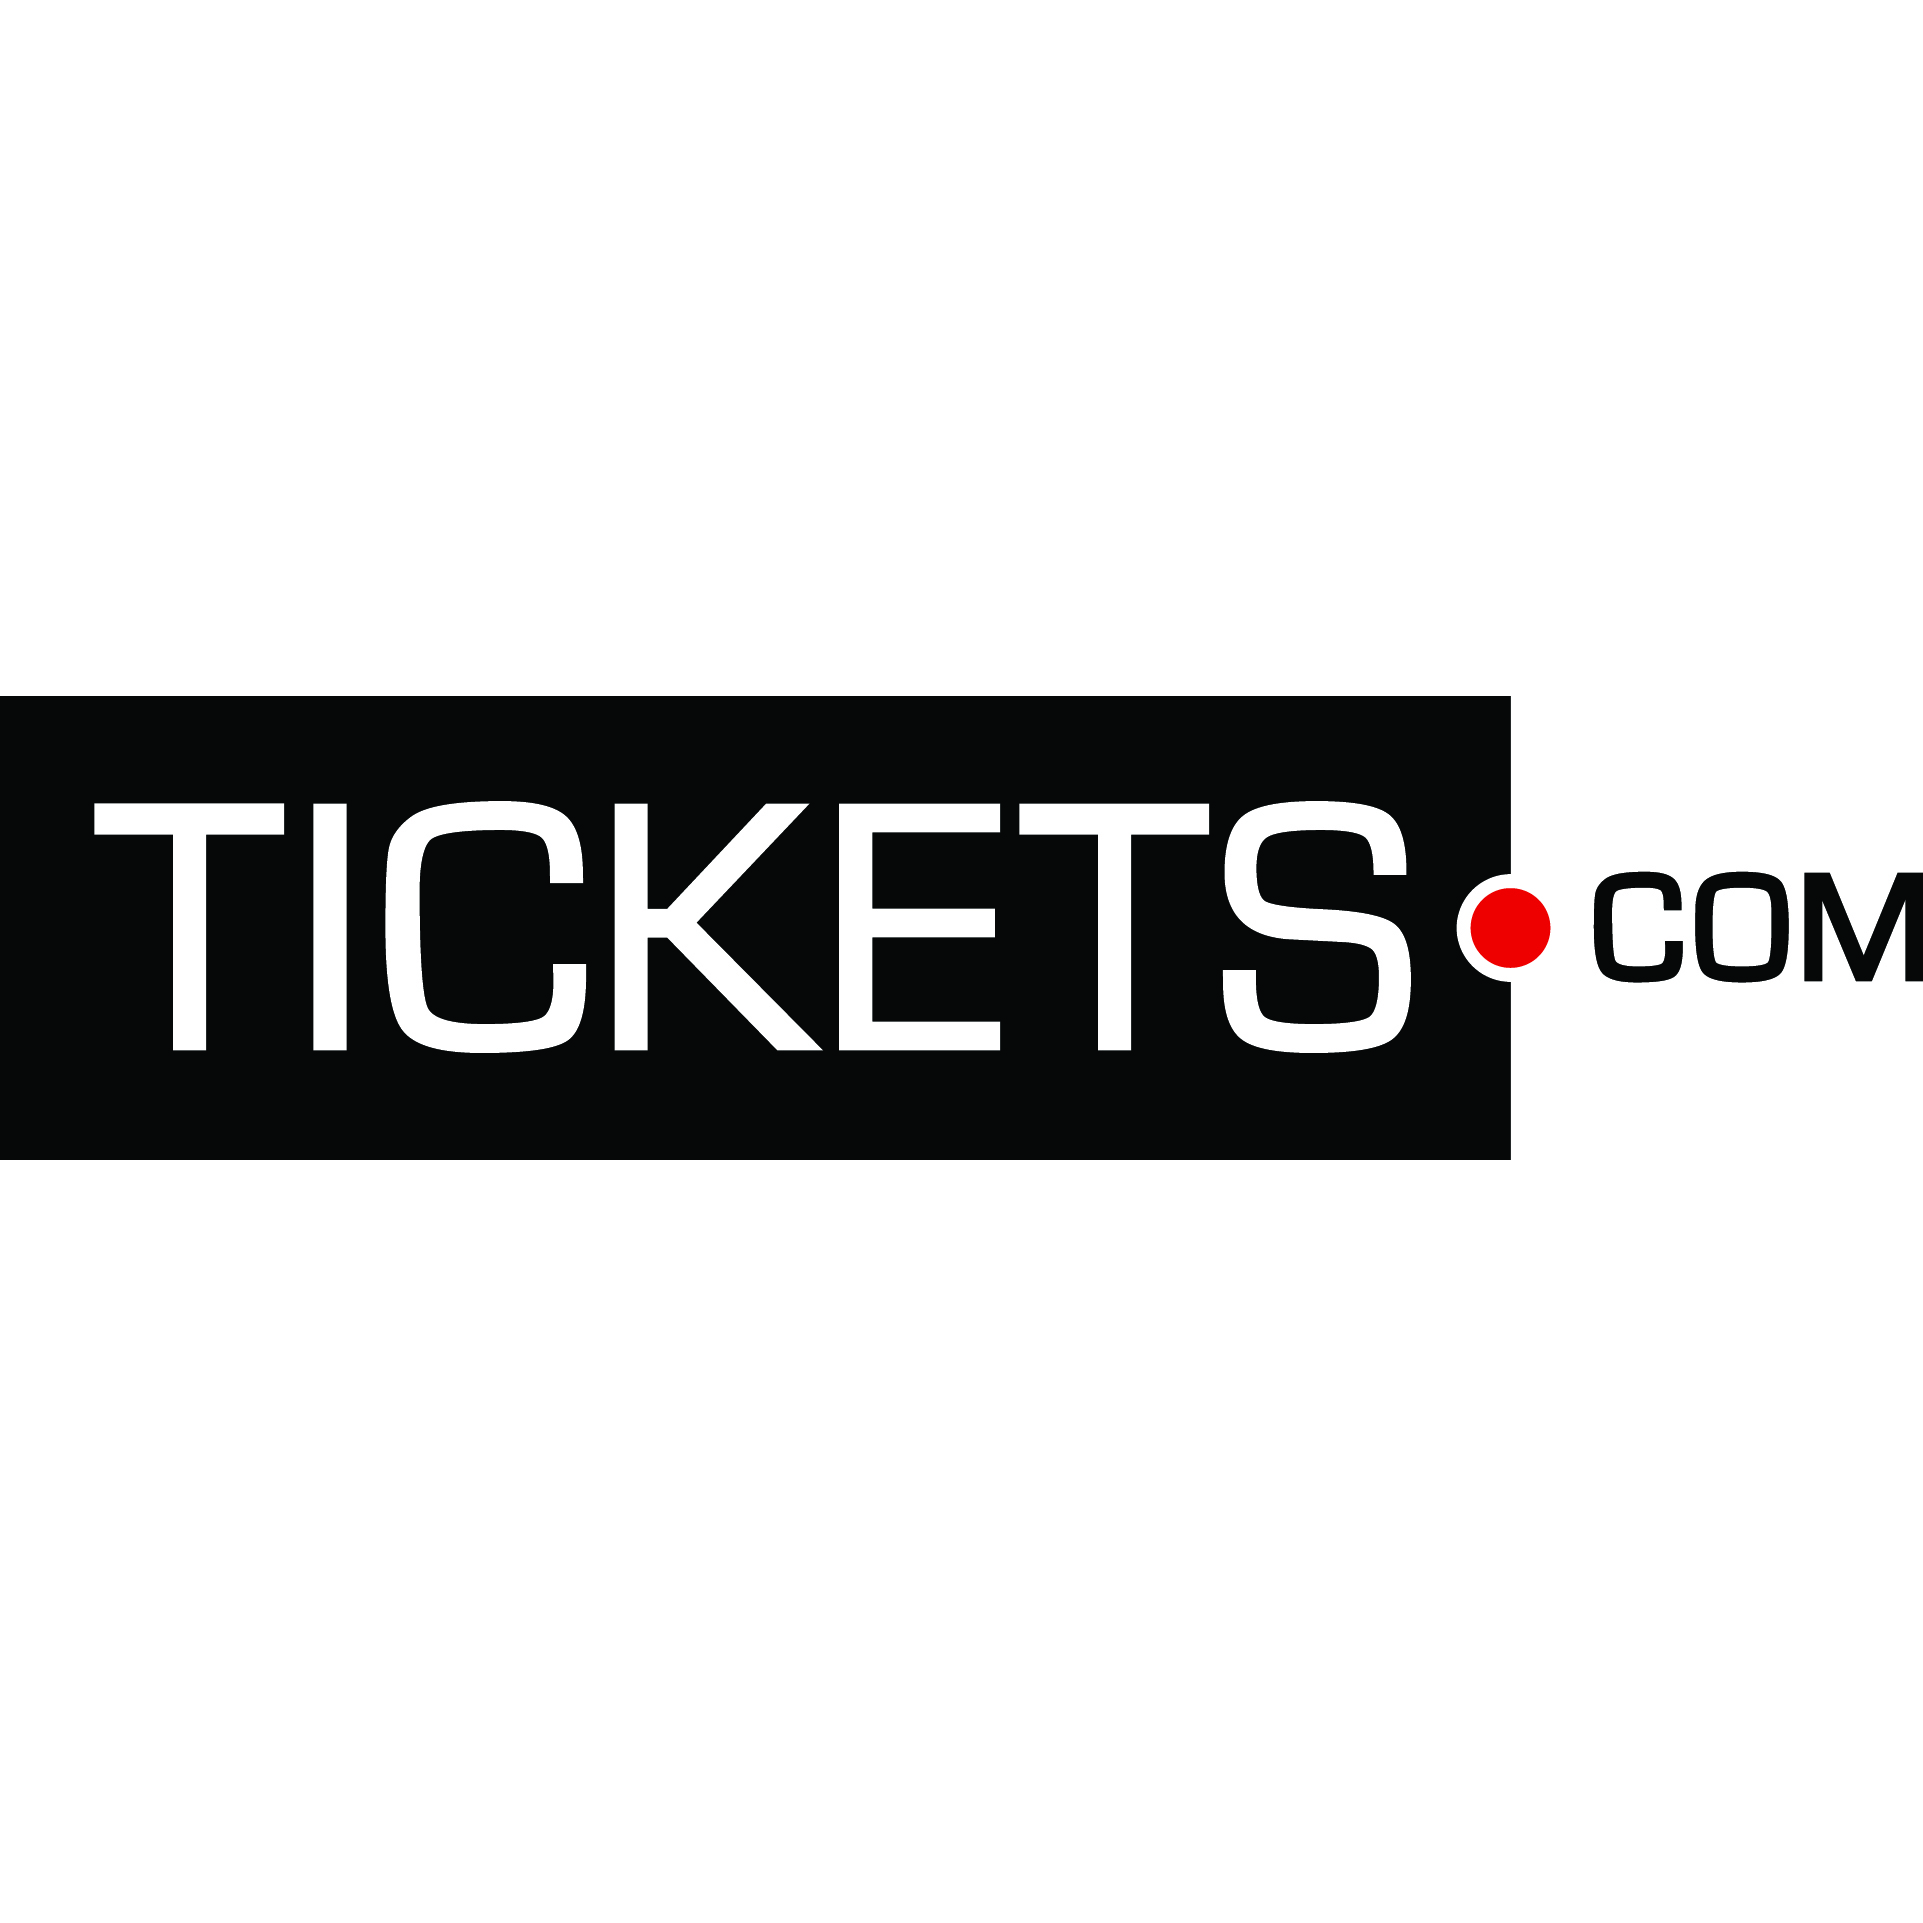 Tickets.com Franchise